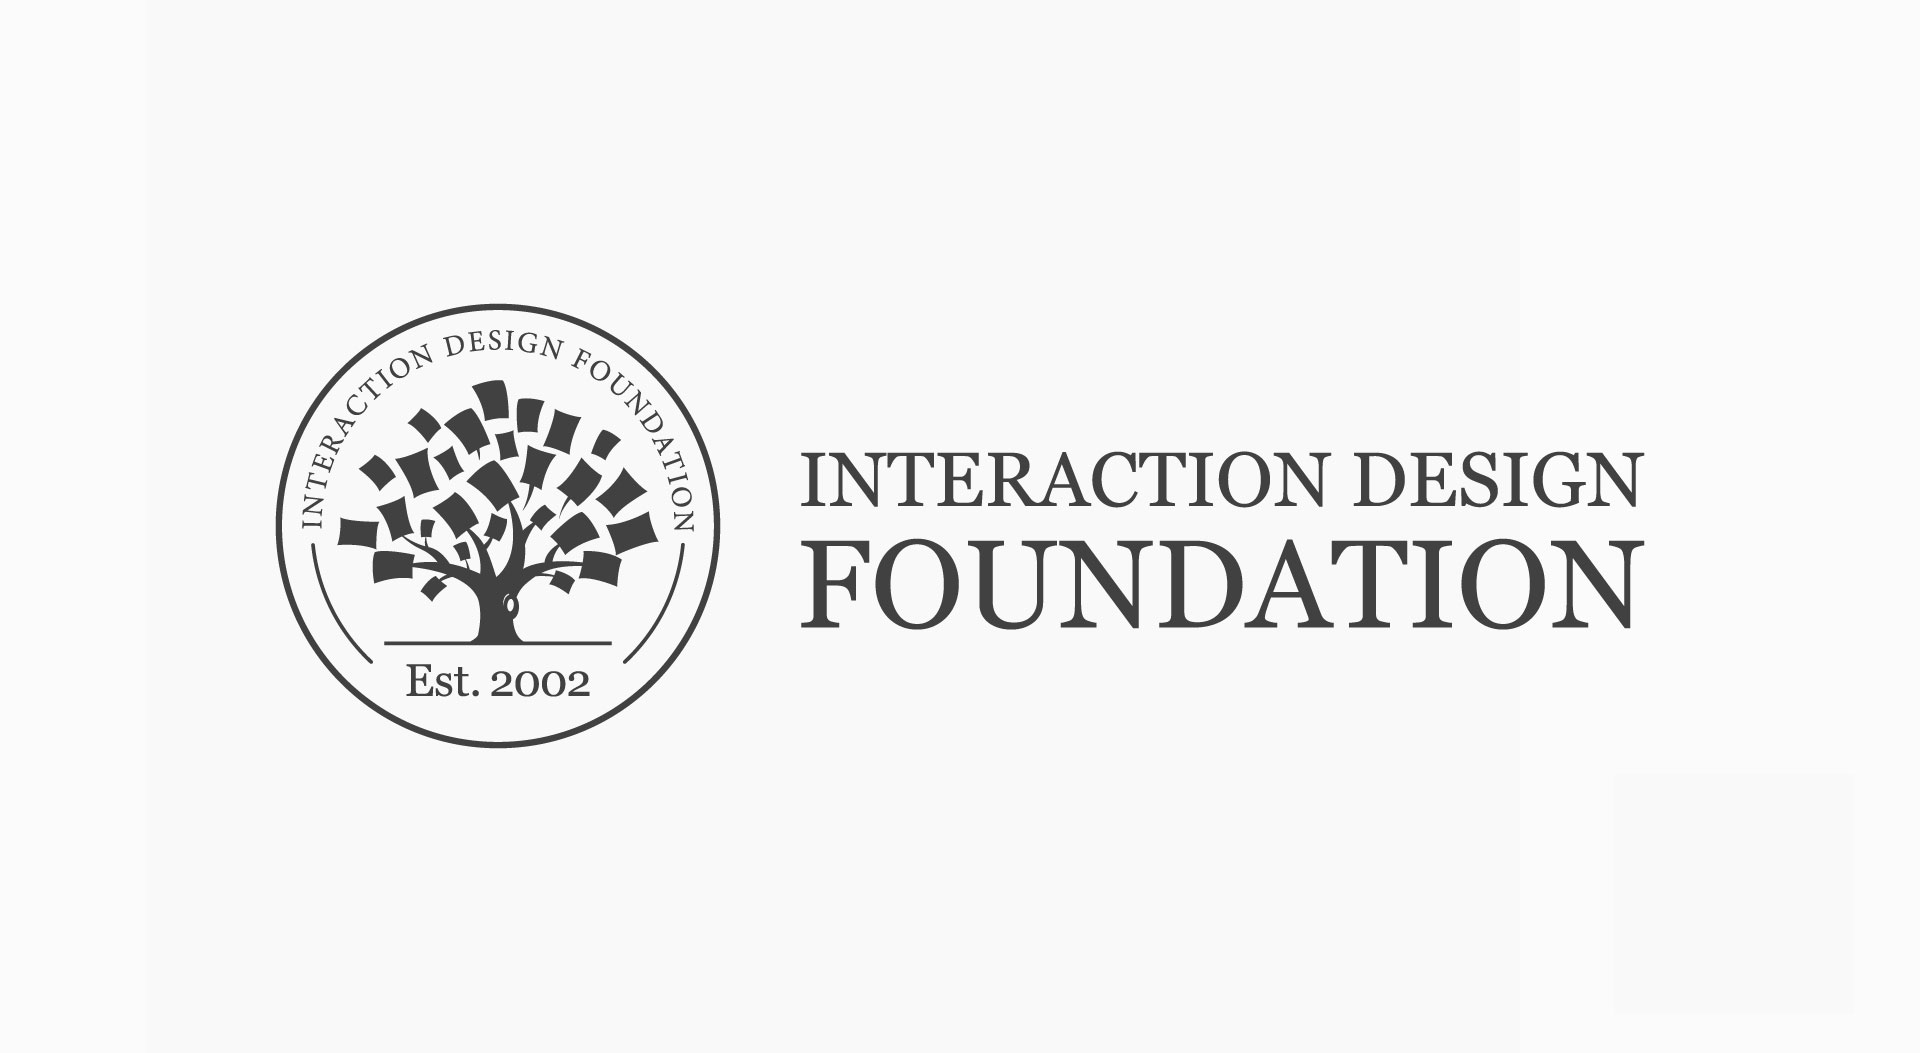 interaction design foundation - logo